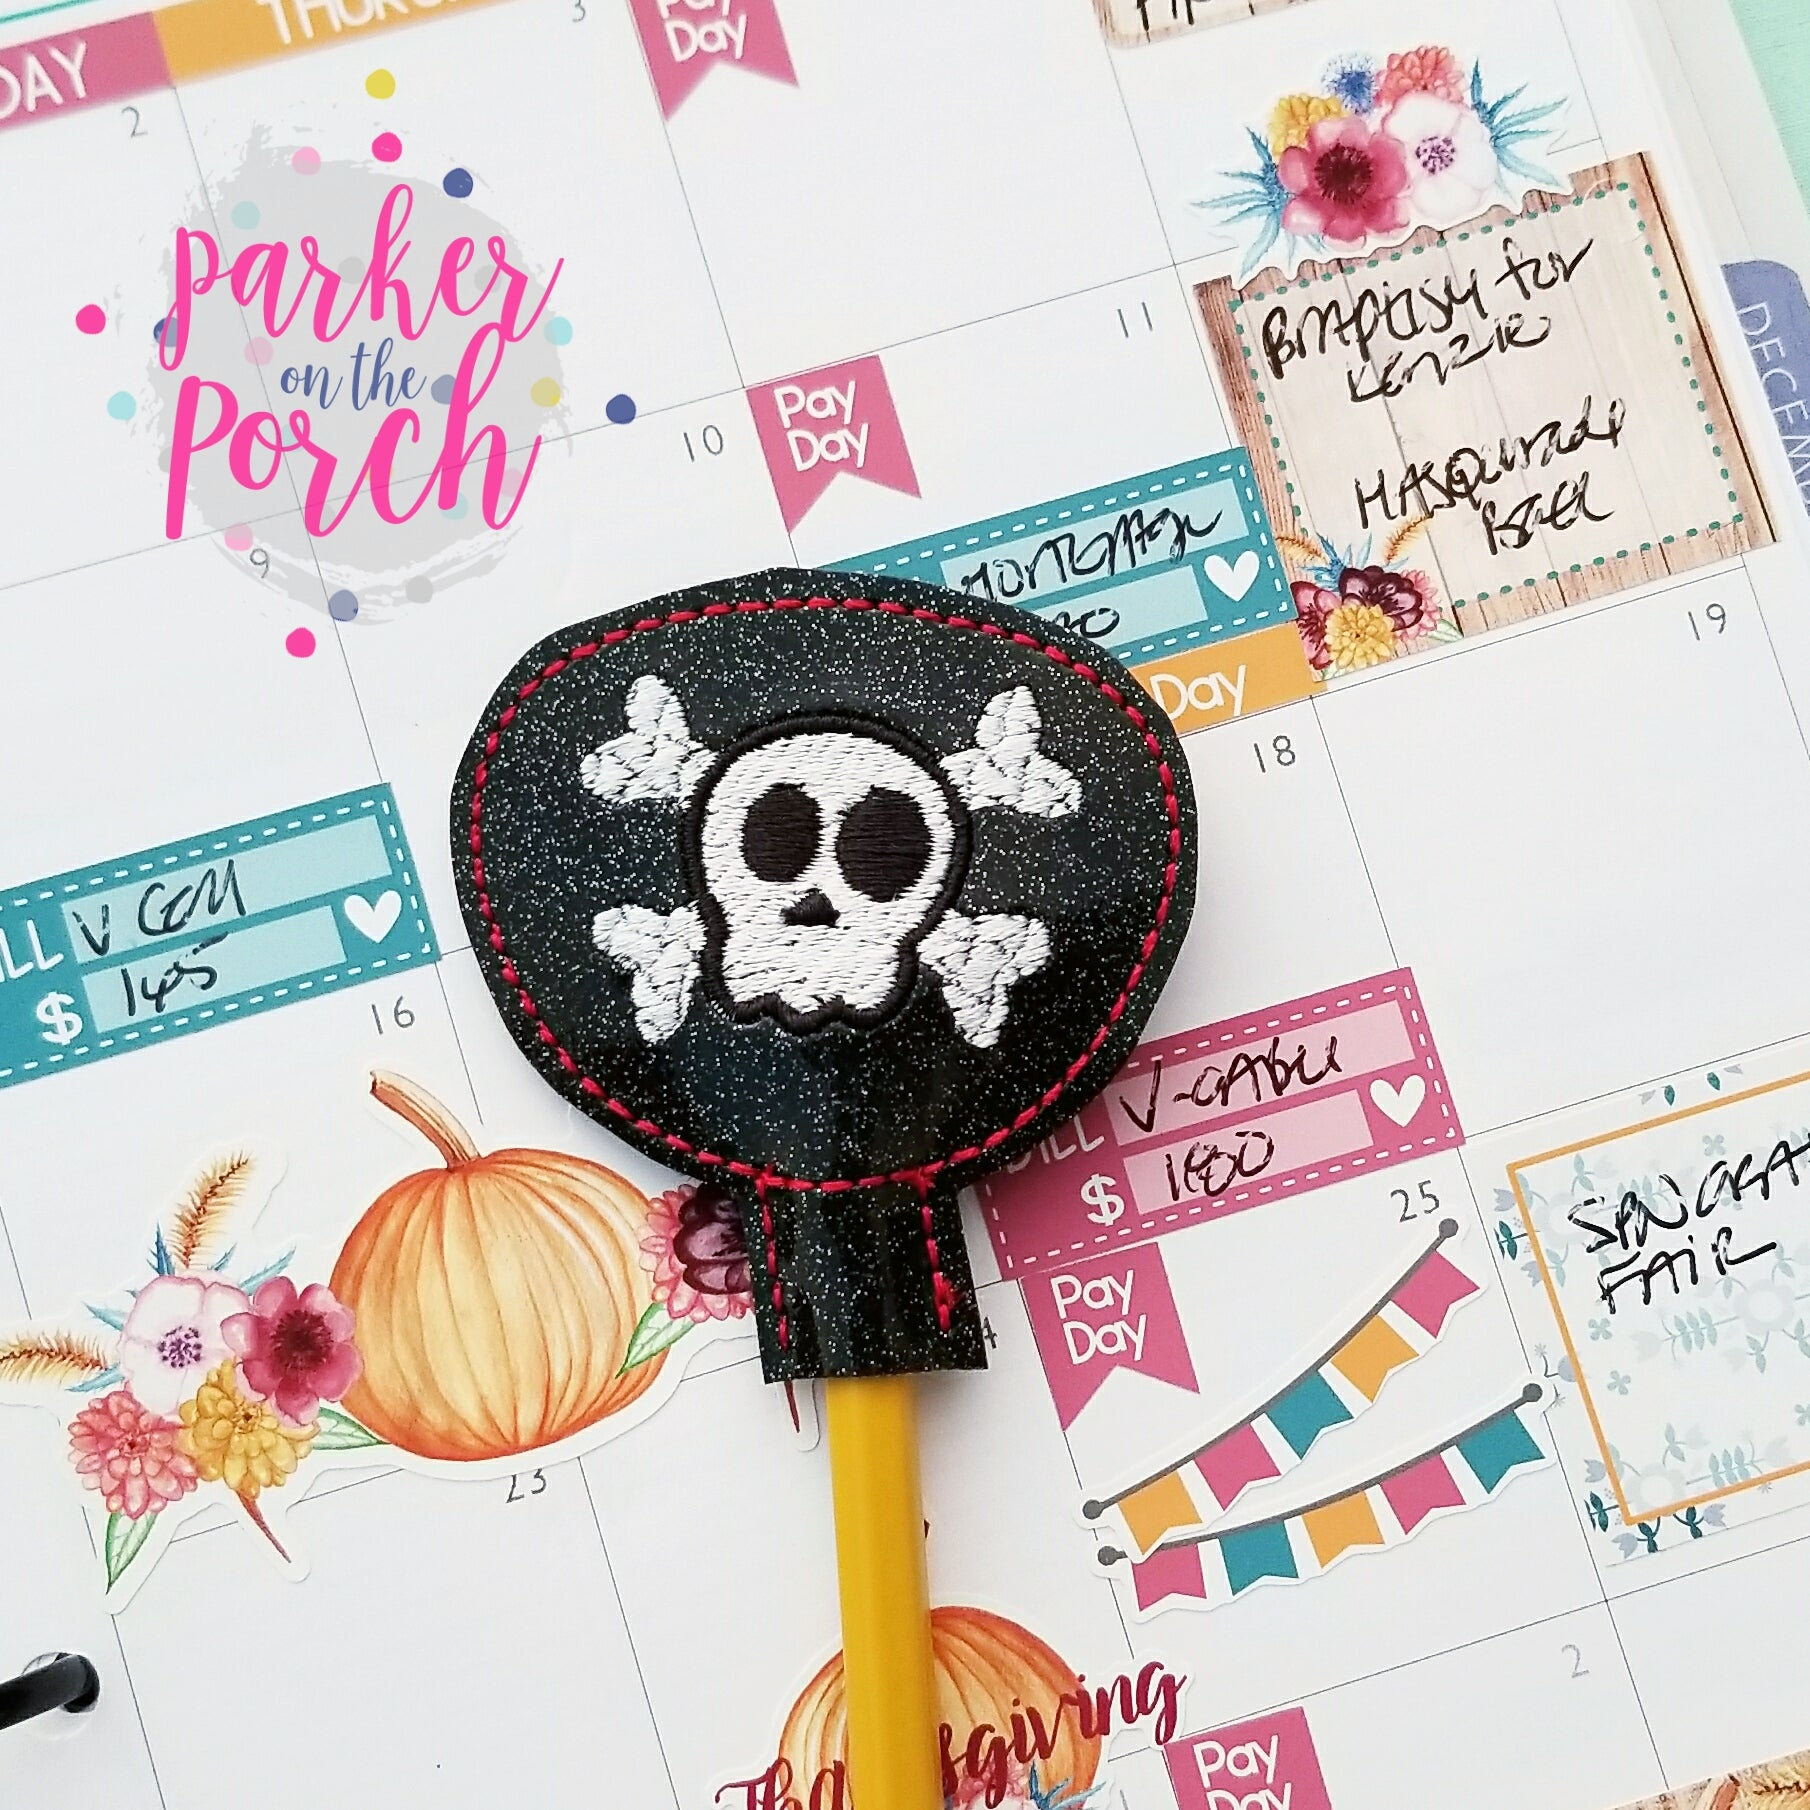 Digital Download- Pirate Eye Patch Pencil Topper - in the hoop machine embroidery